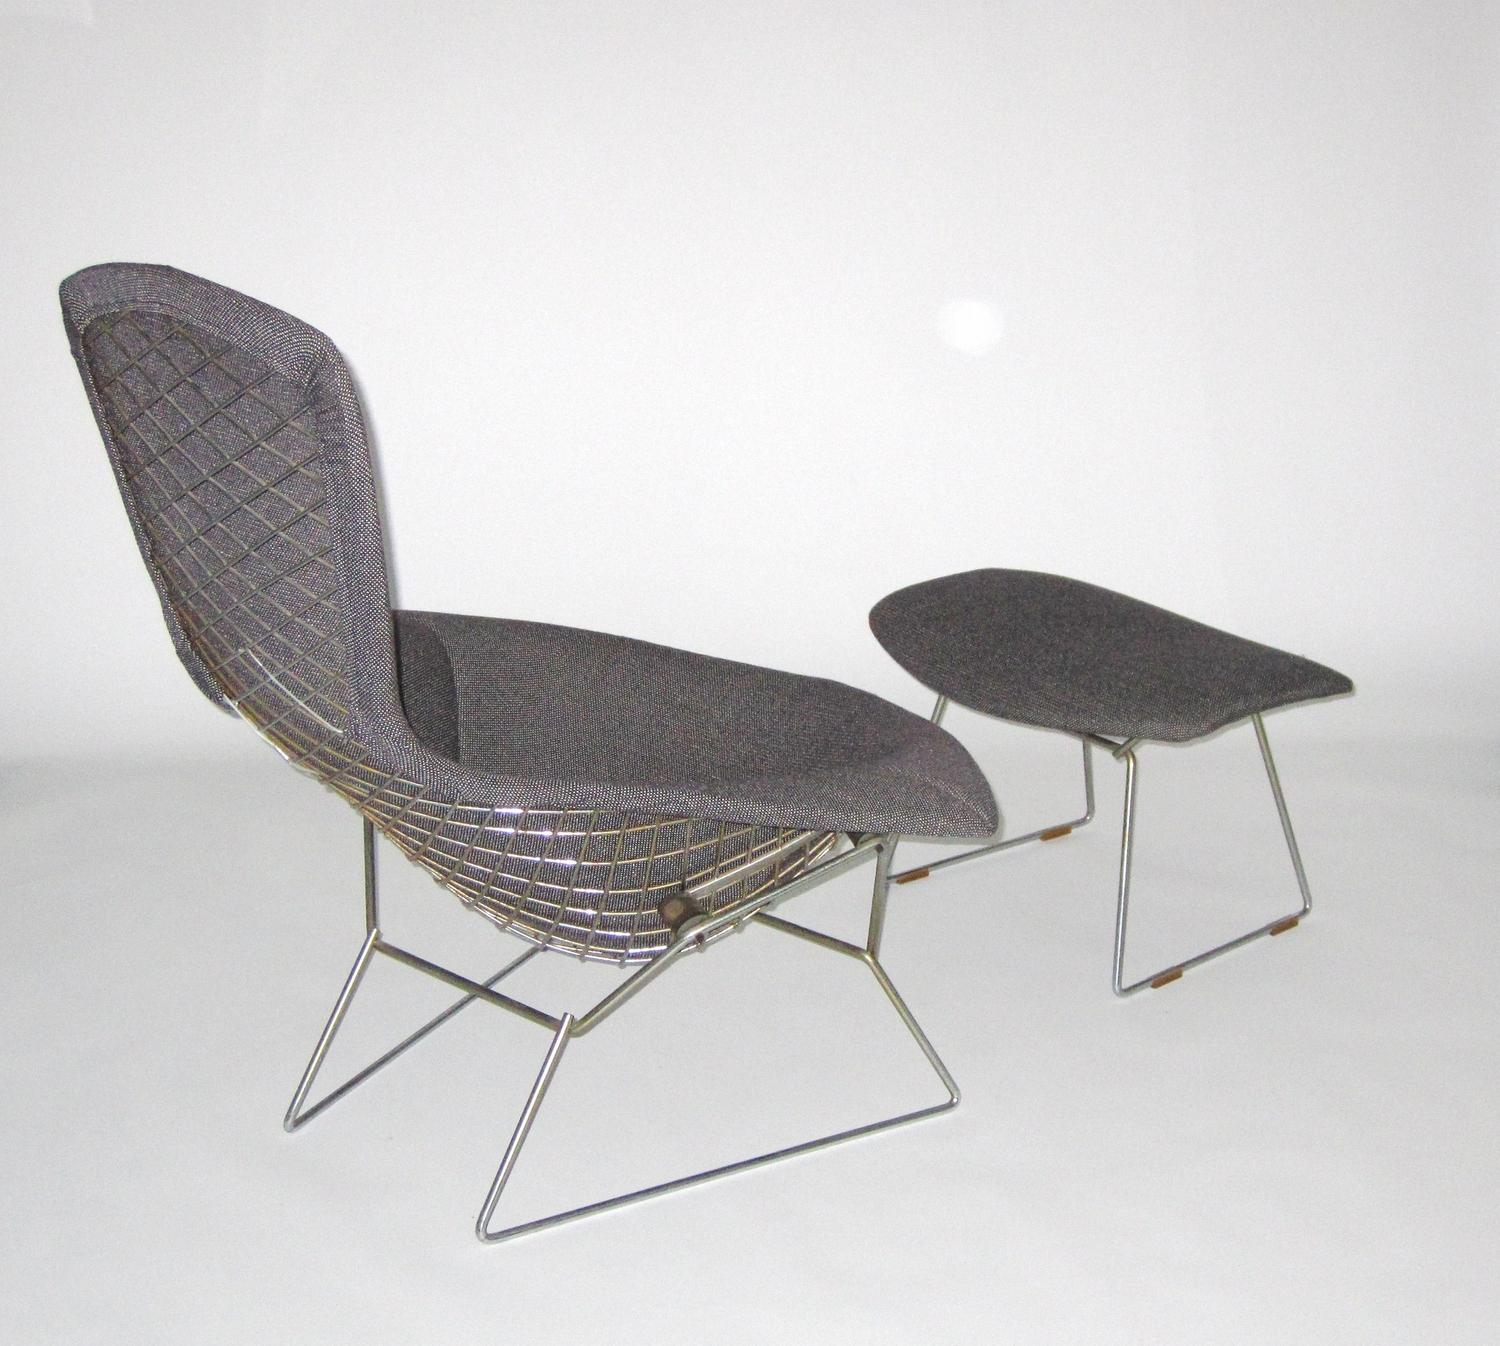 Harry Bertoia for Knoll: Bird chair with ottoman c. 1950